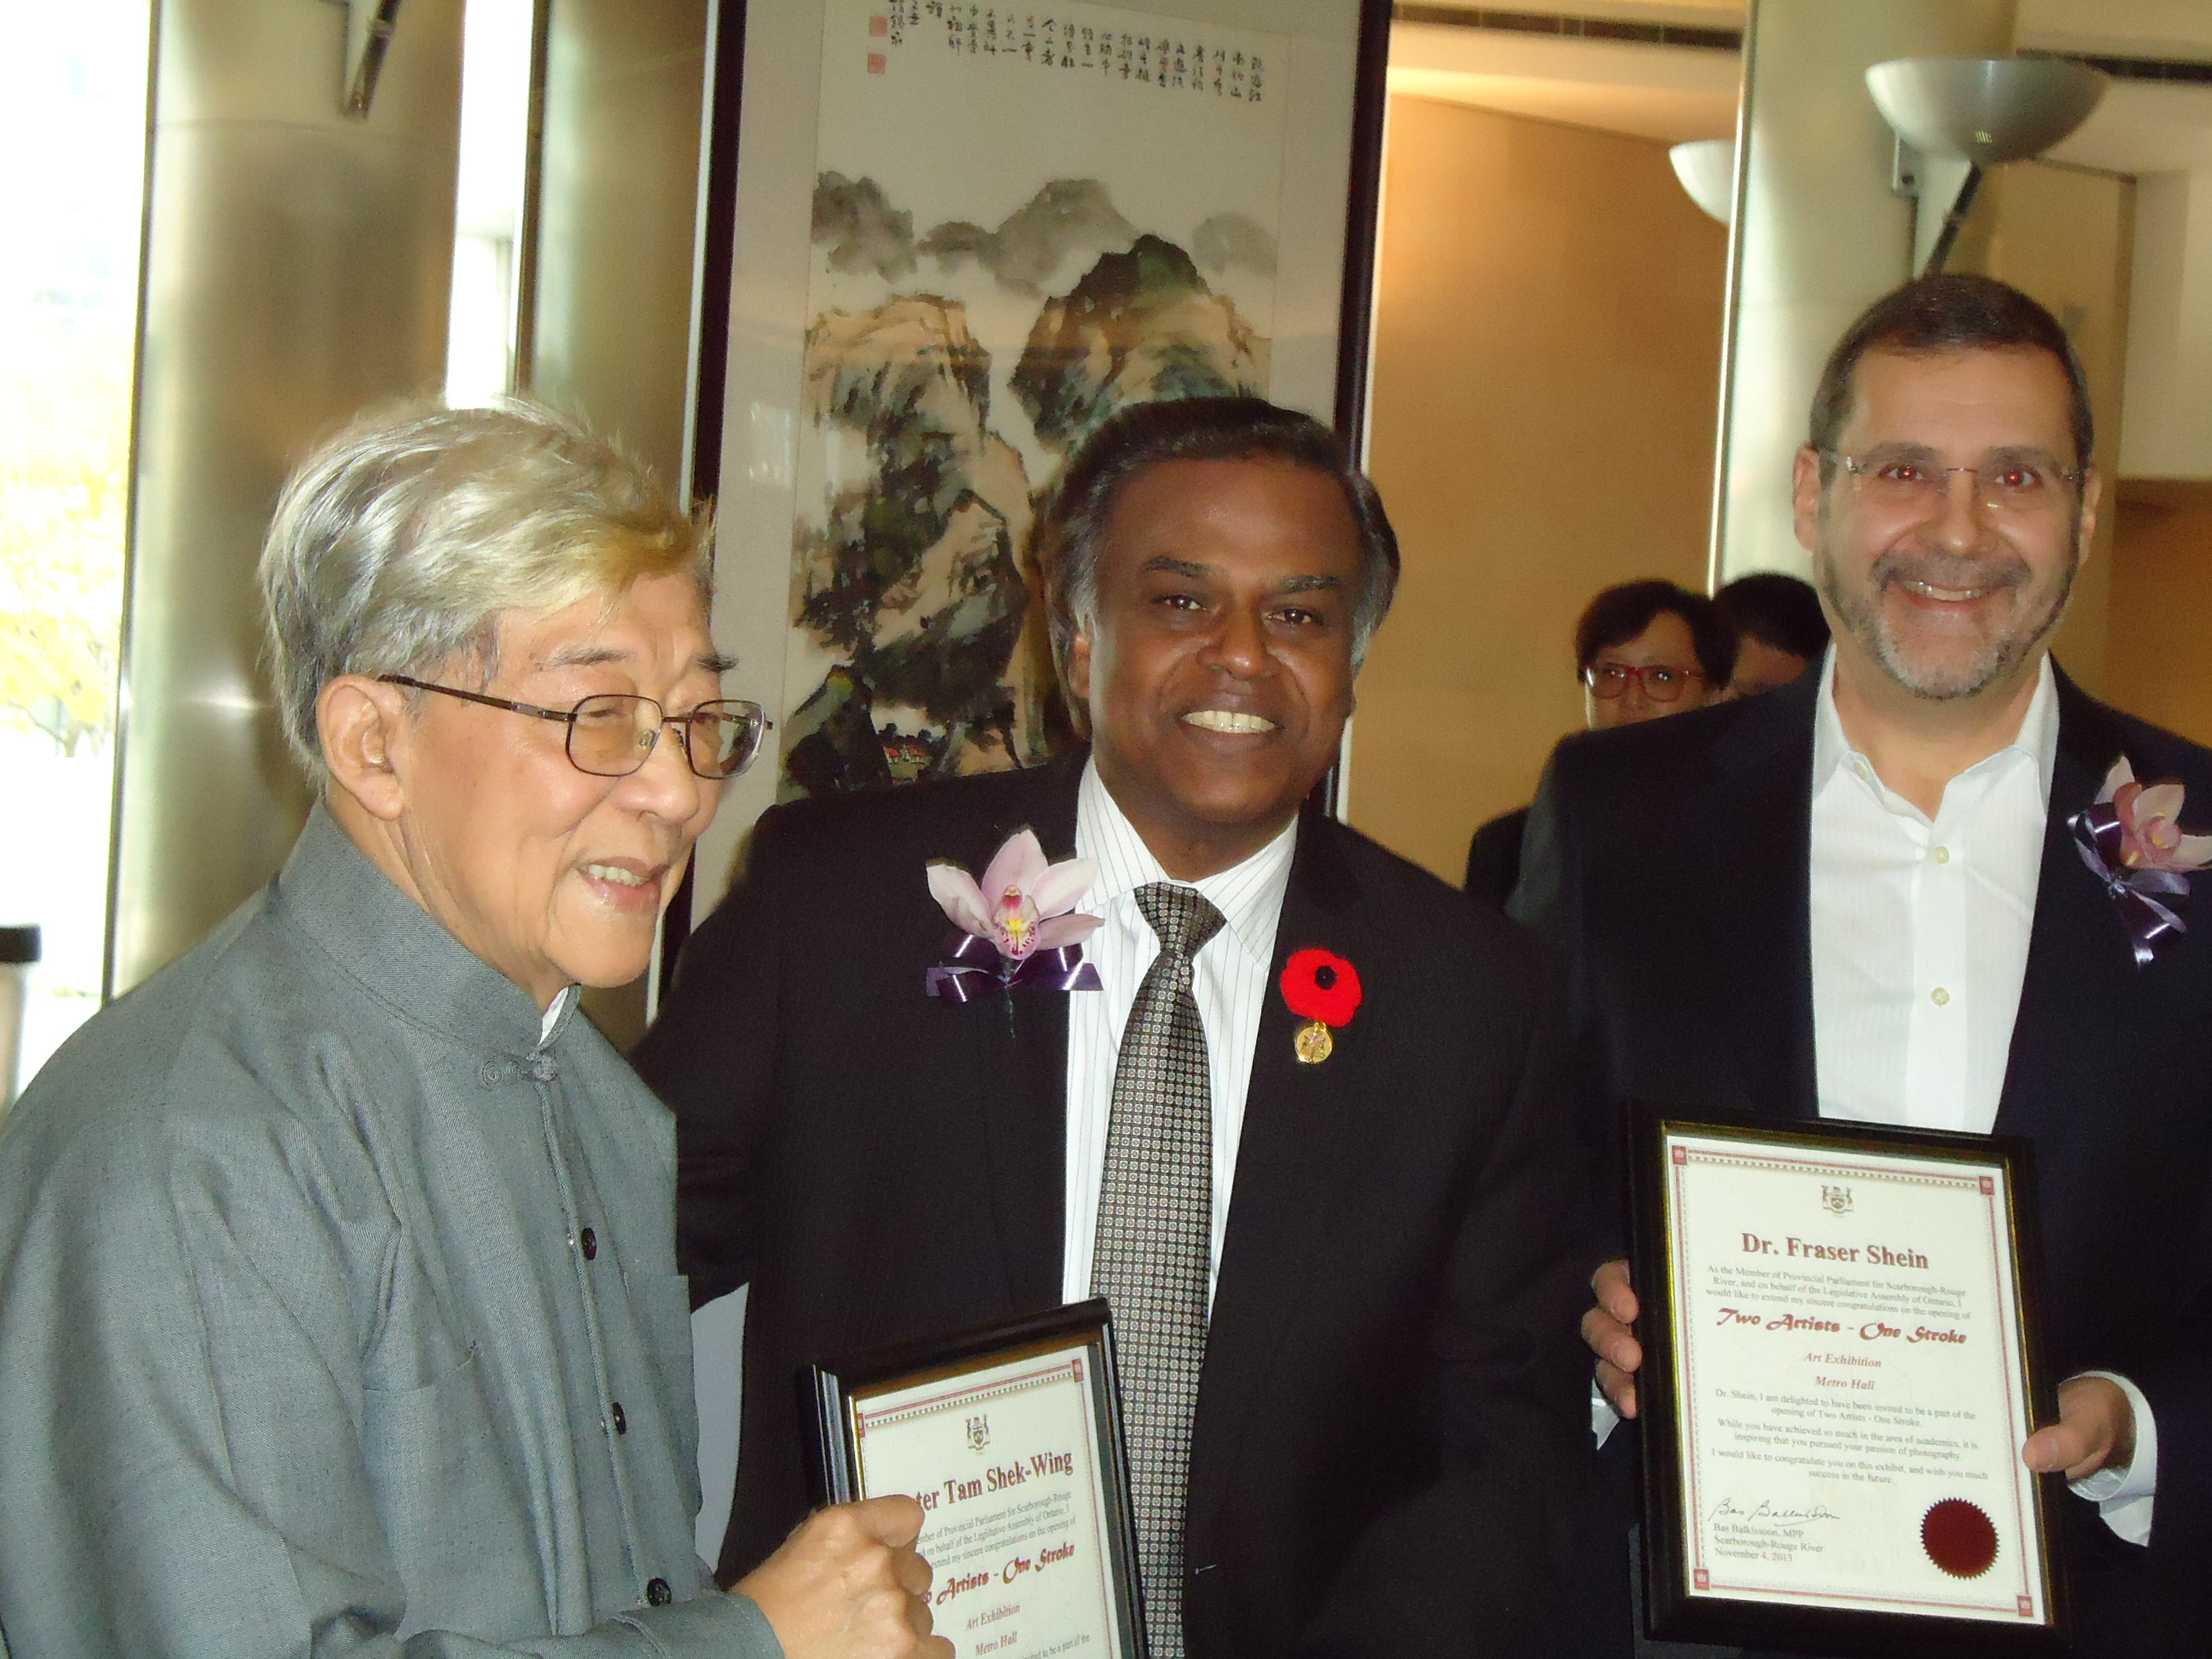 Tam and Shein, each received a certificate from Liberal MPP Bas Balkissoon.